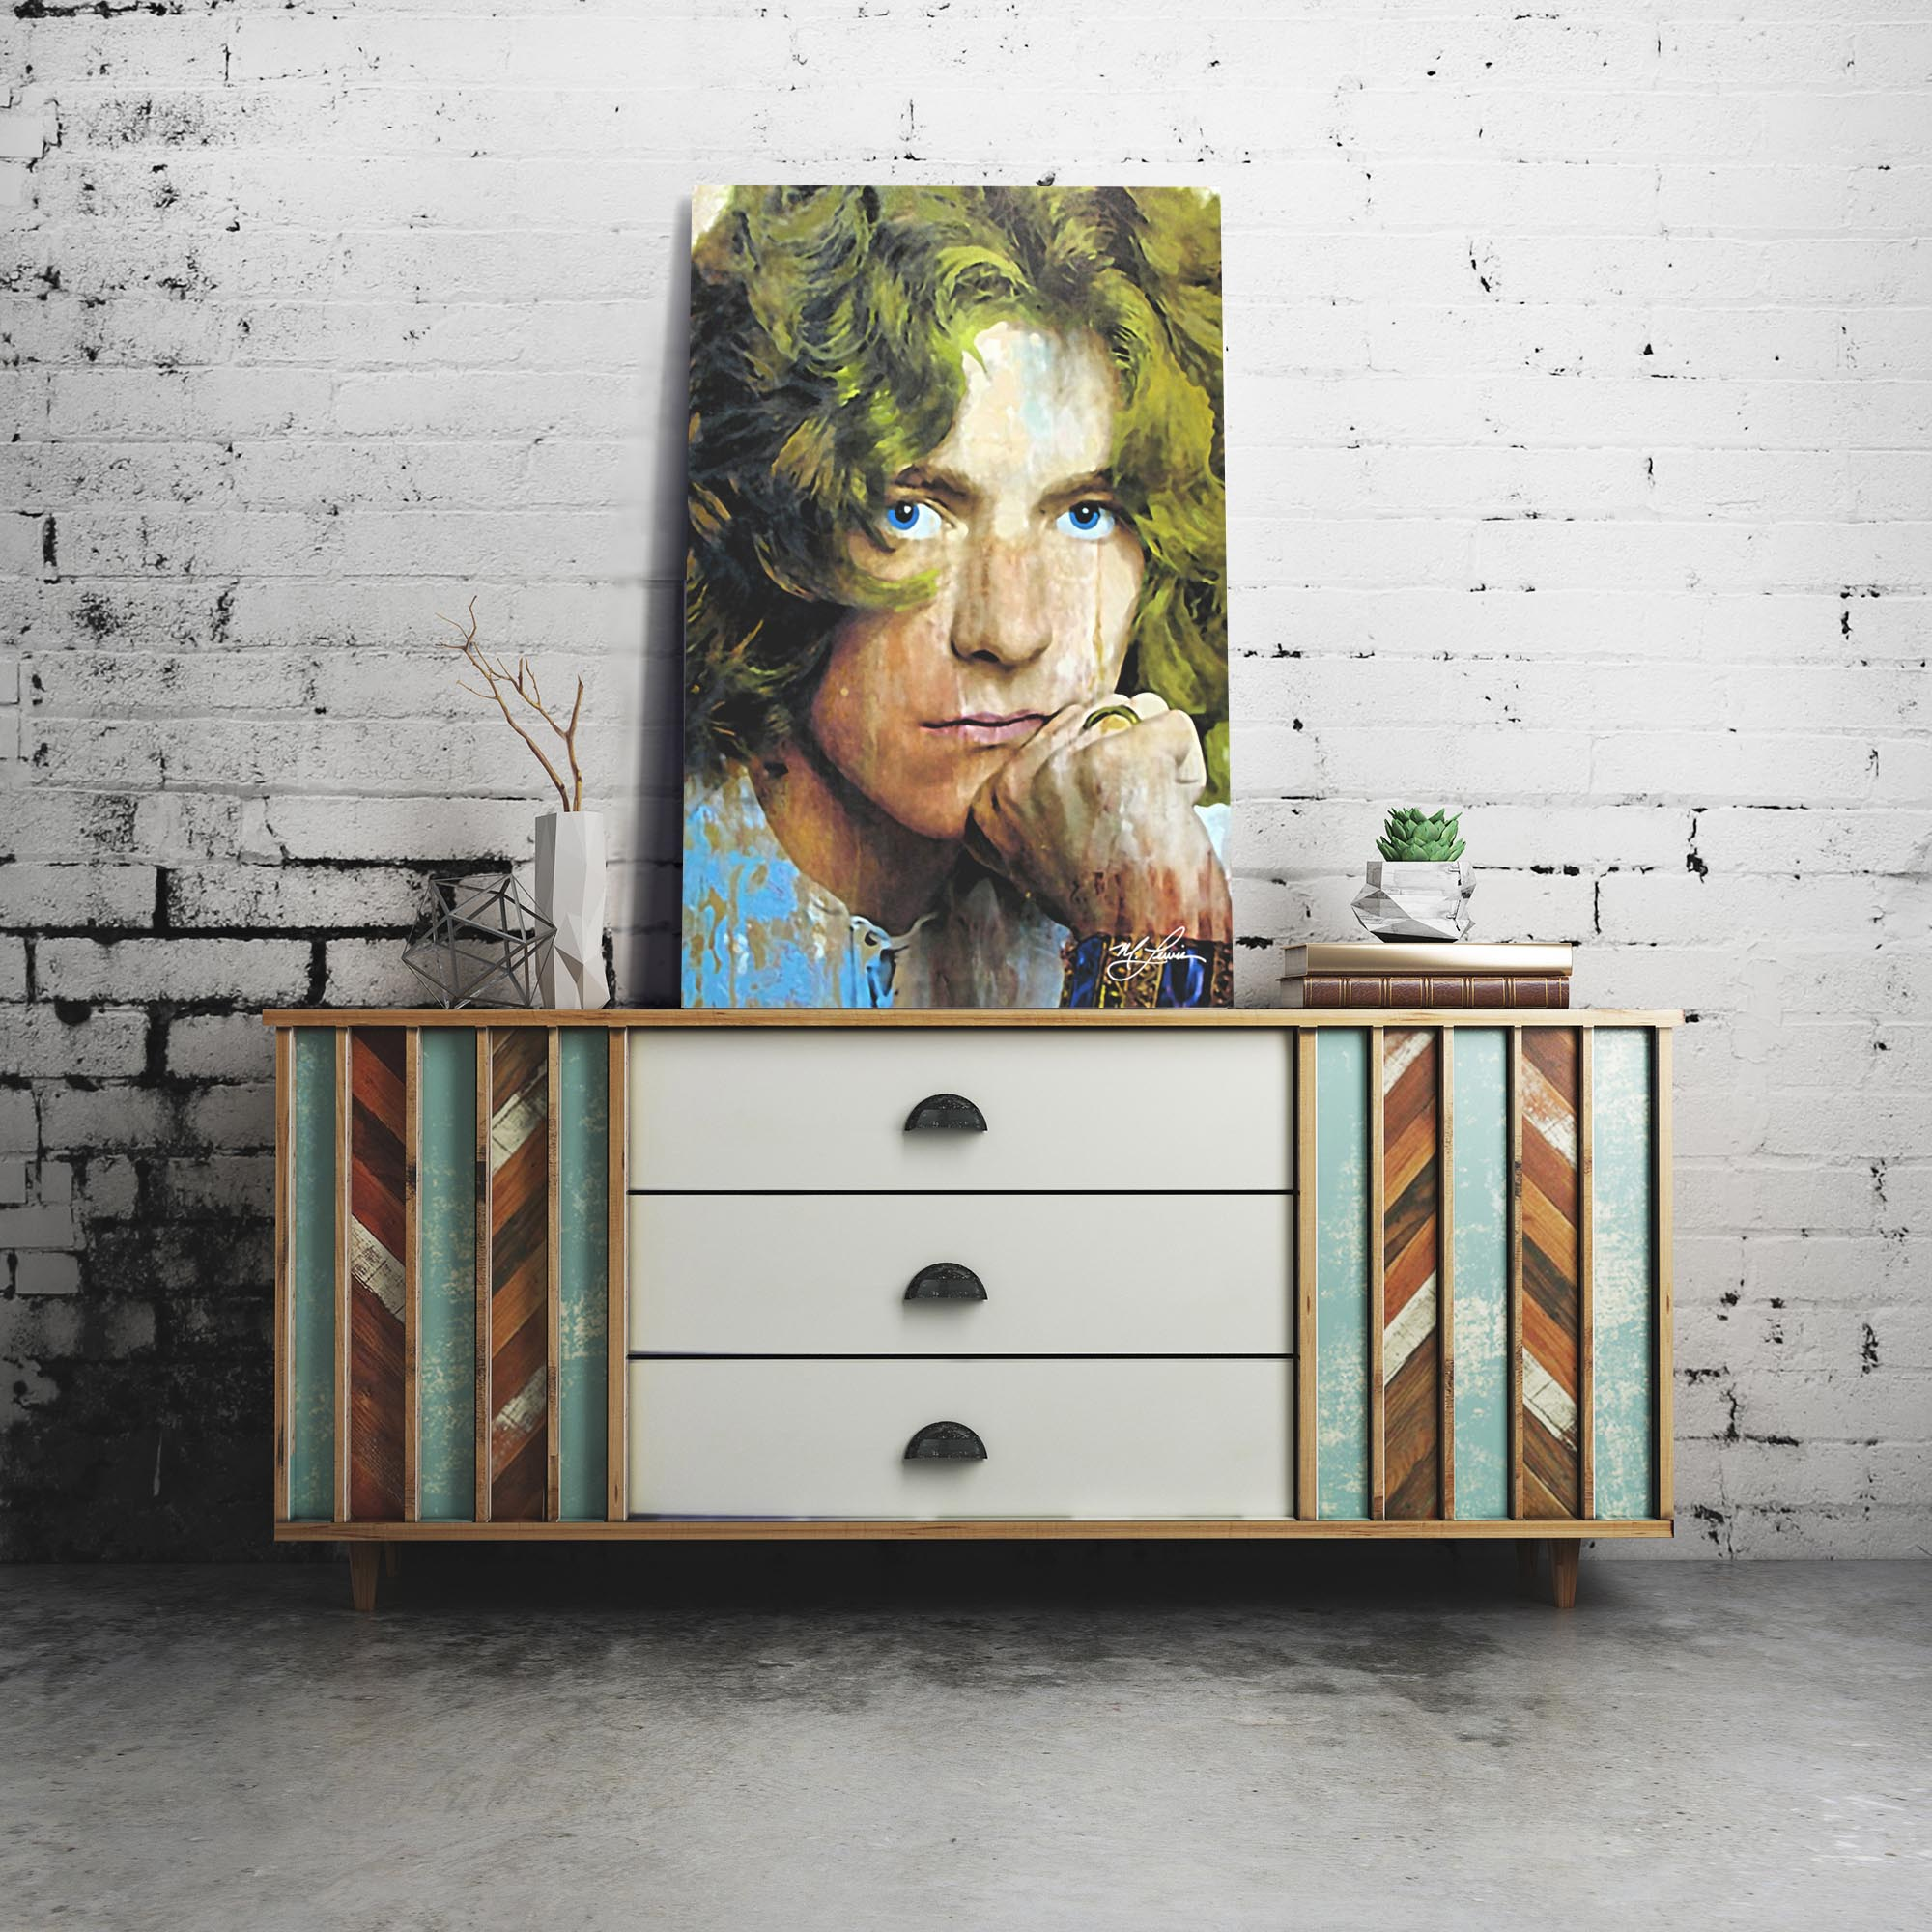 Robert Plant Shear Power 22x32 Metal or Plexiglass Pop Art Portrait - Lifestyle View